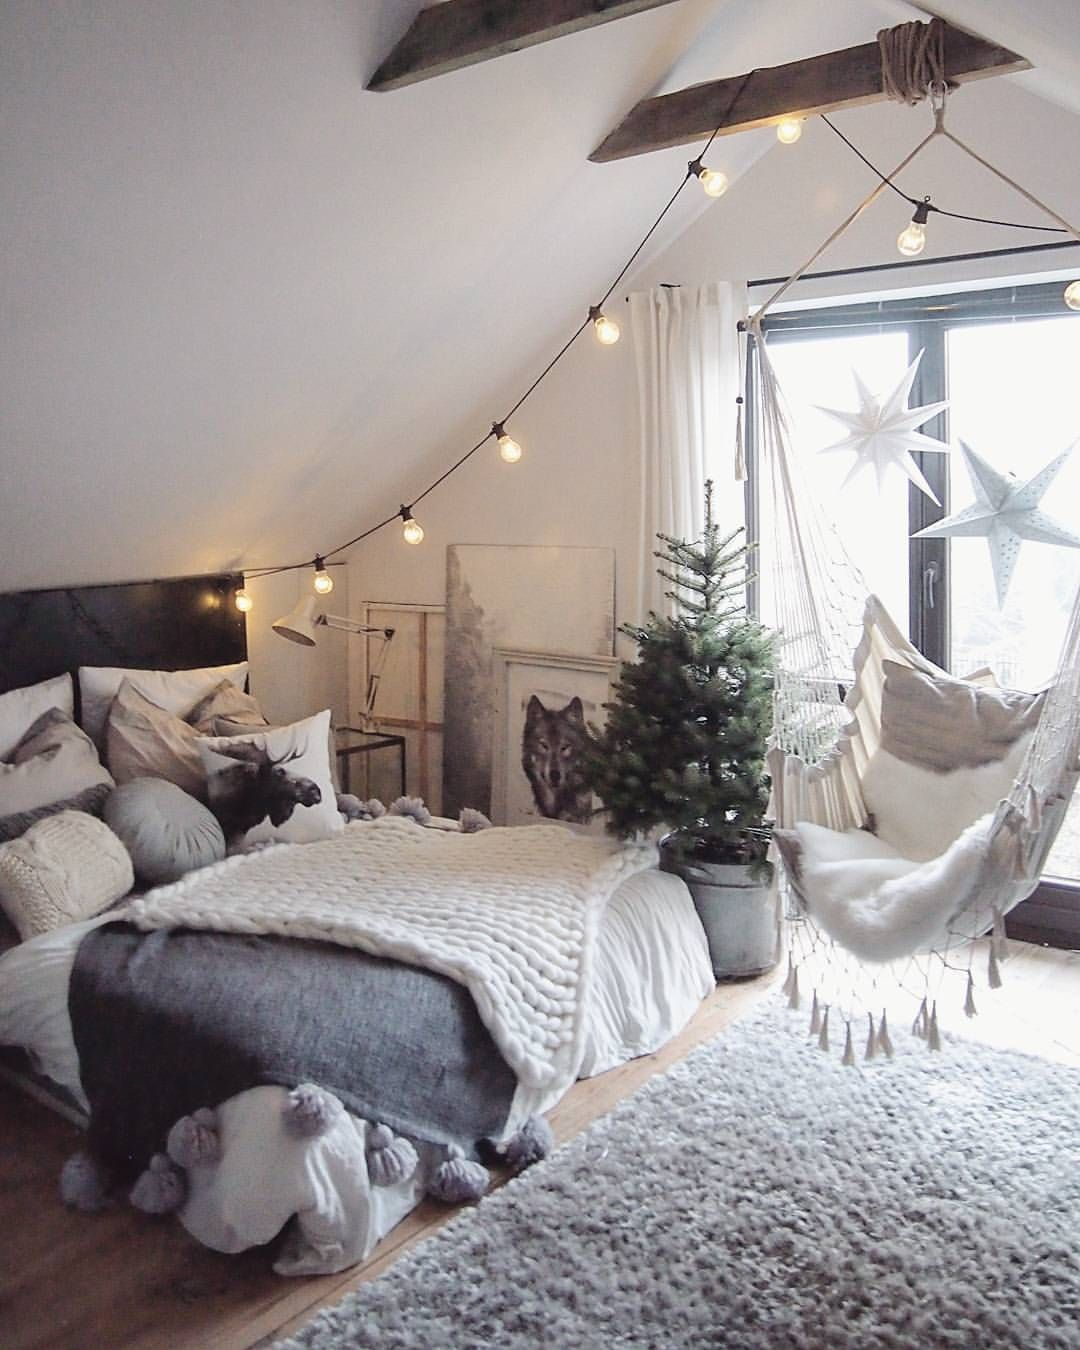 Cozy Bedroom Small Apartments And Small Apartment Living On Pinterest